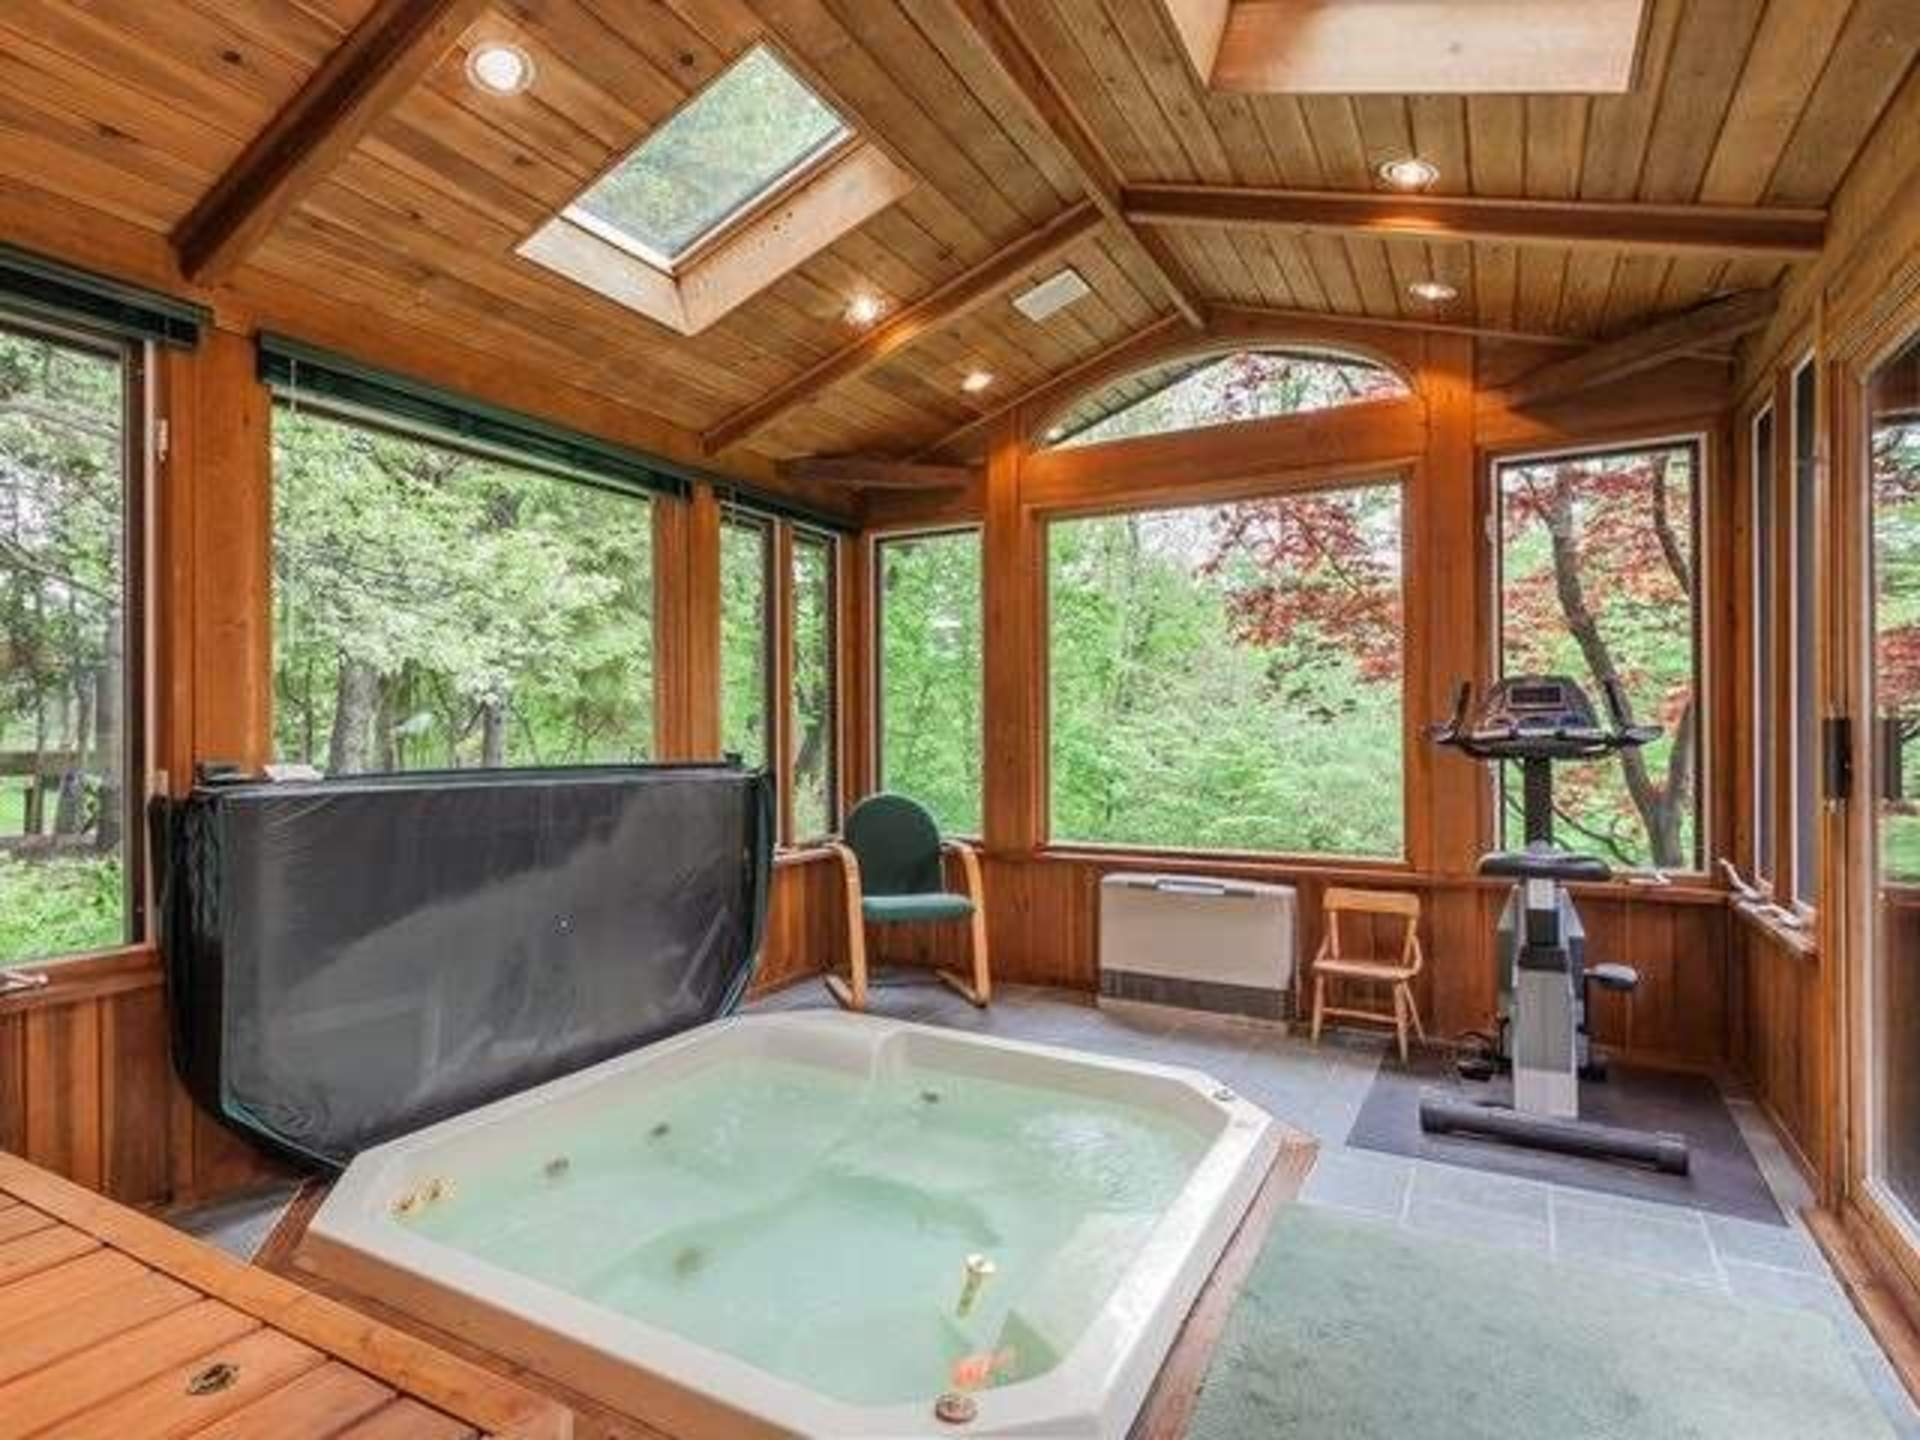 44 at SALE # 459 - 77 Forest Grove Drive, Bayview Village, Toronto